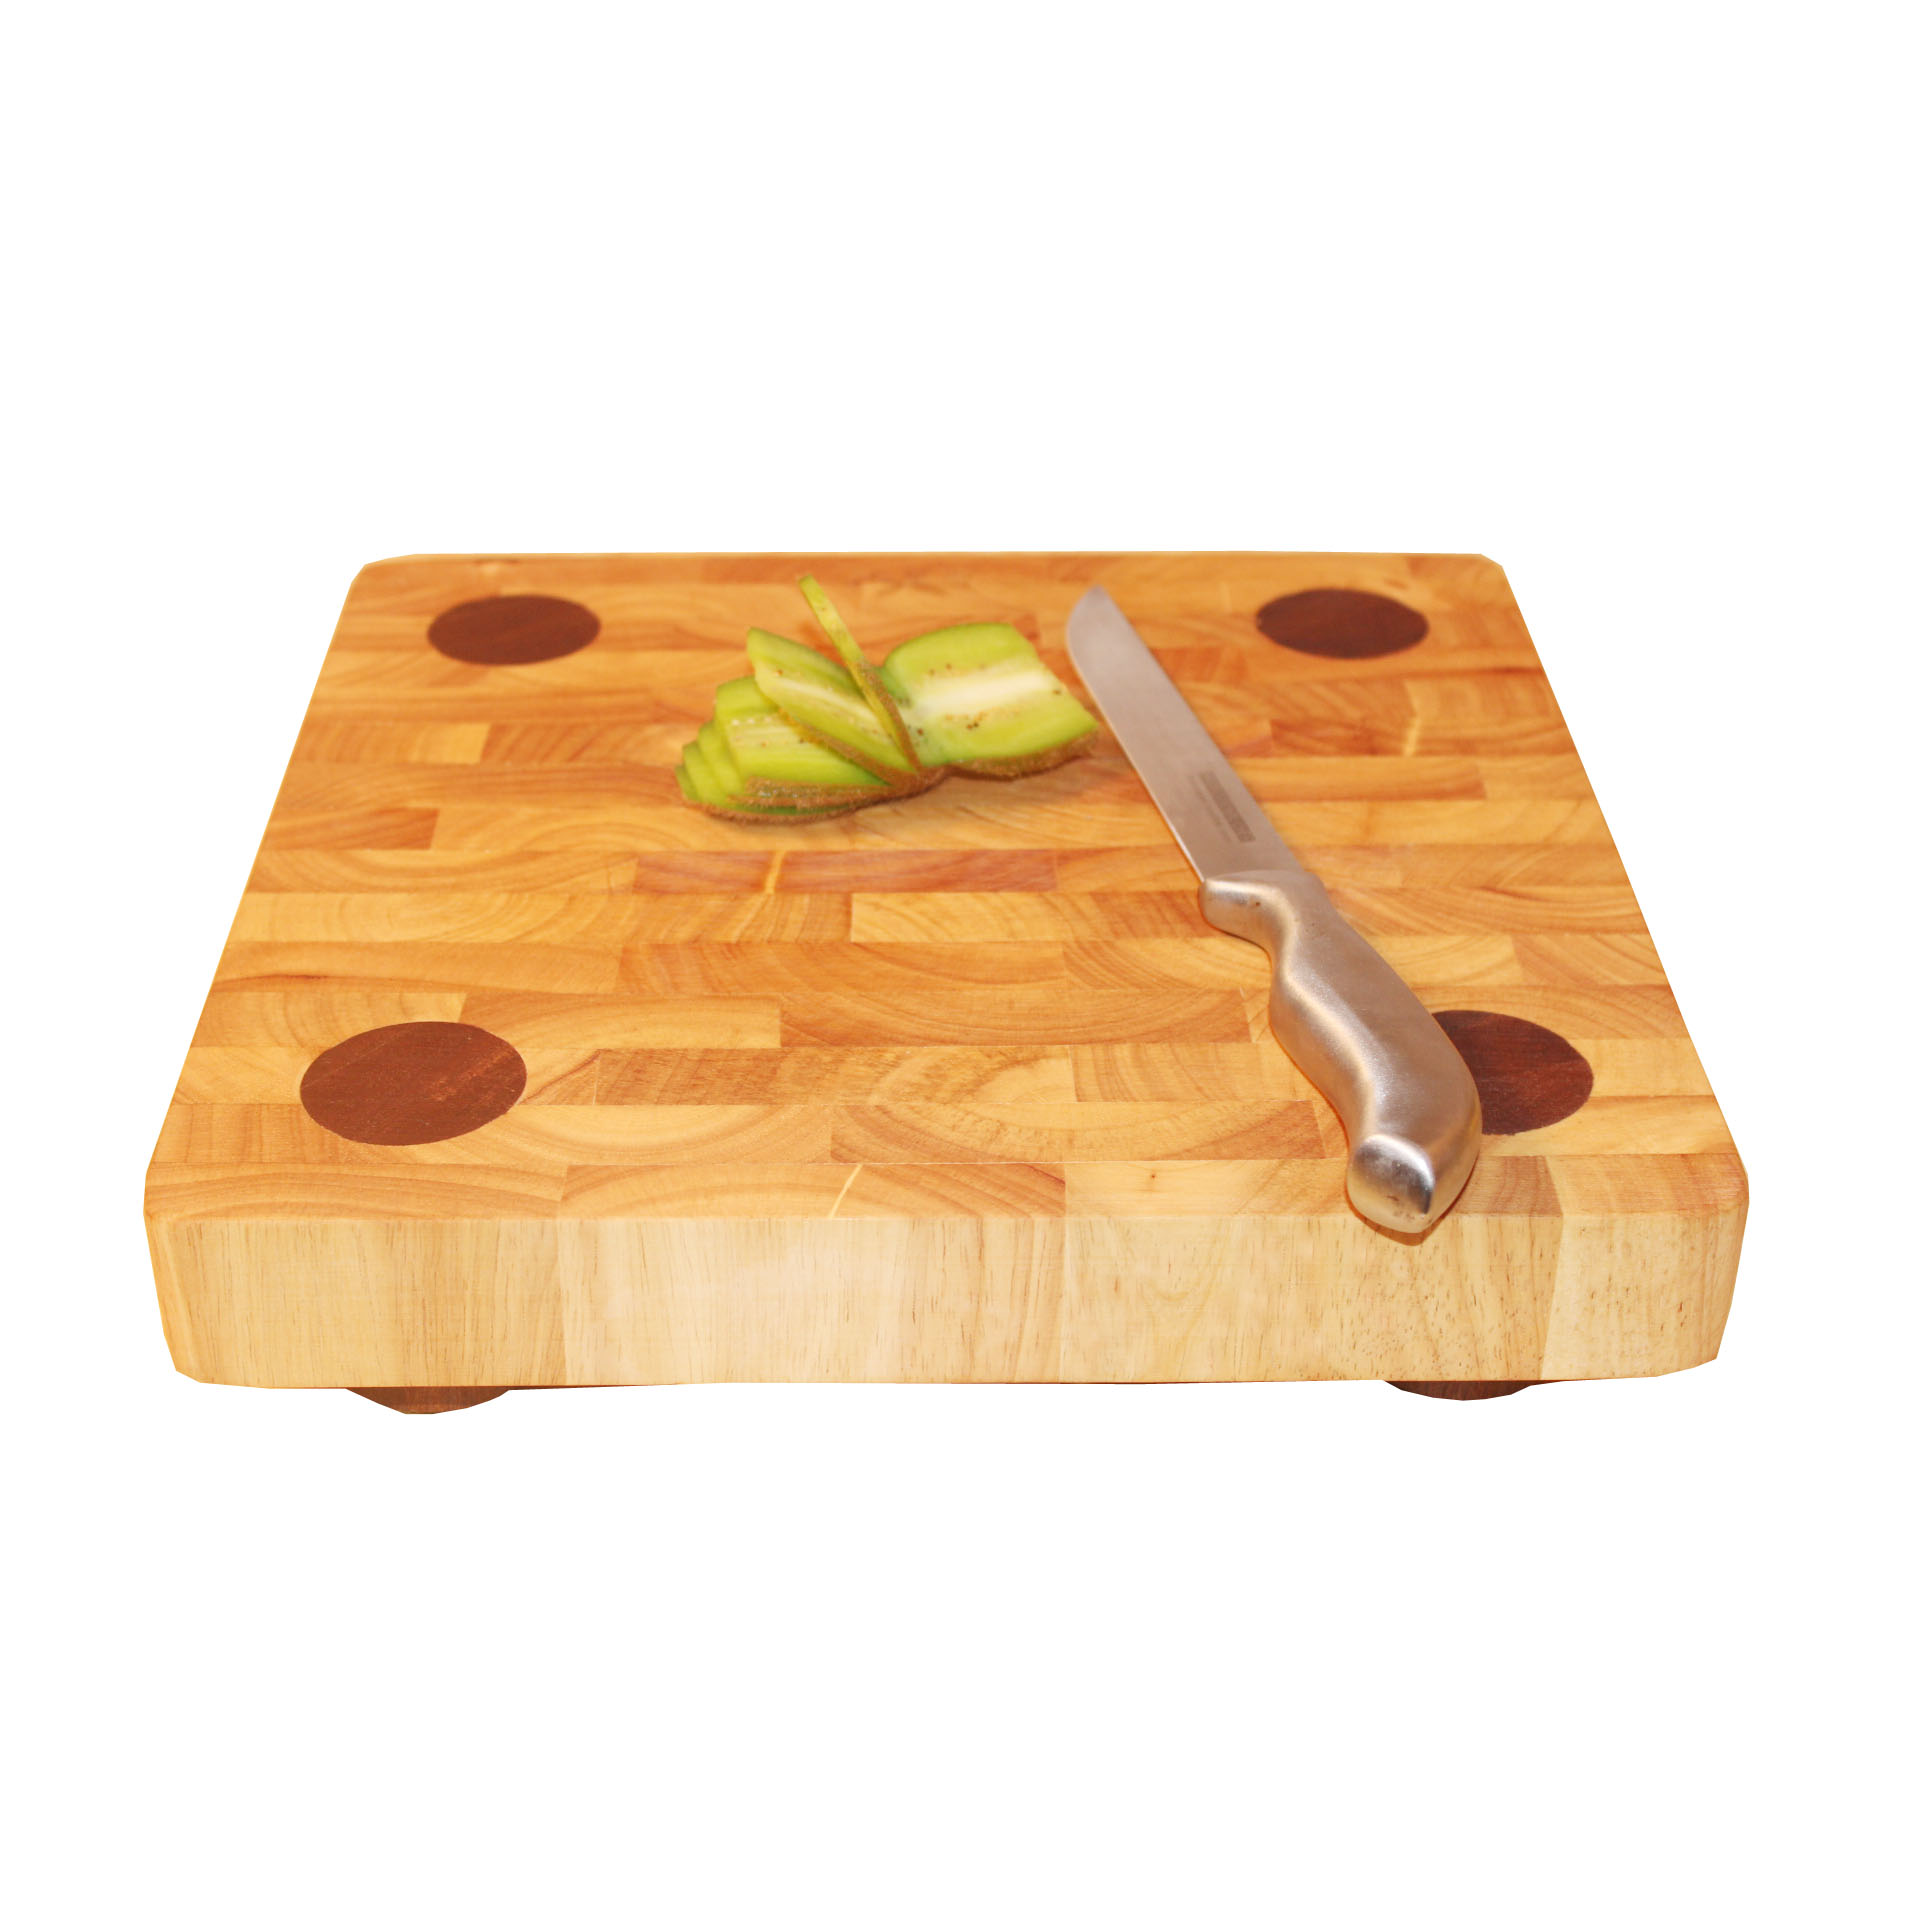 Thick Solid Wood Cutting Board Cutting Block Chopping Board Kitchen Appliances In Chopping